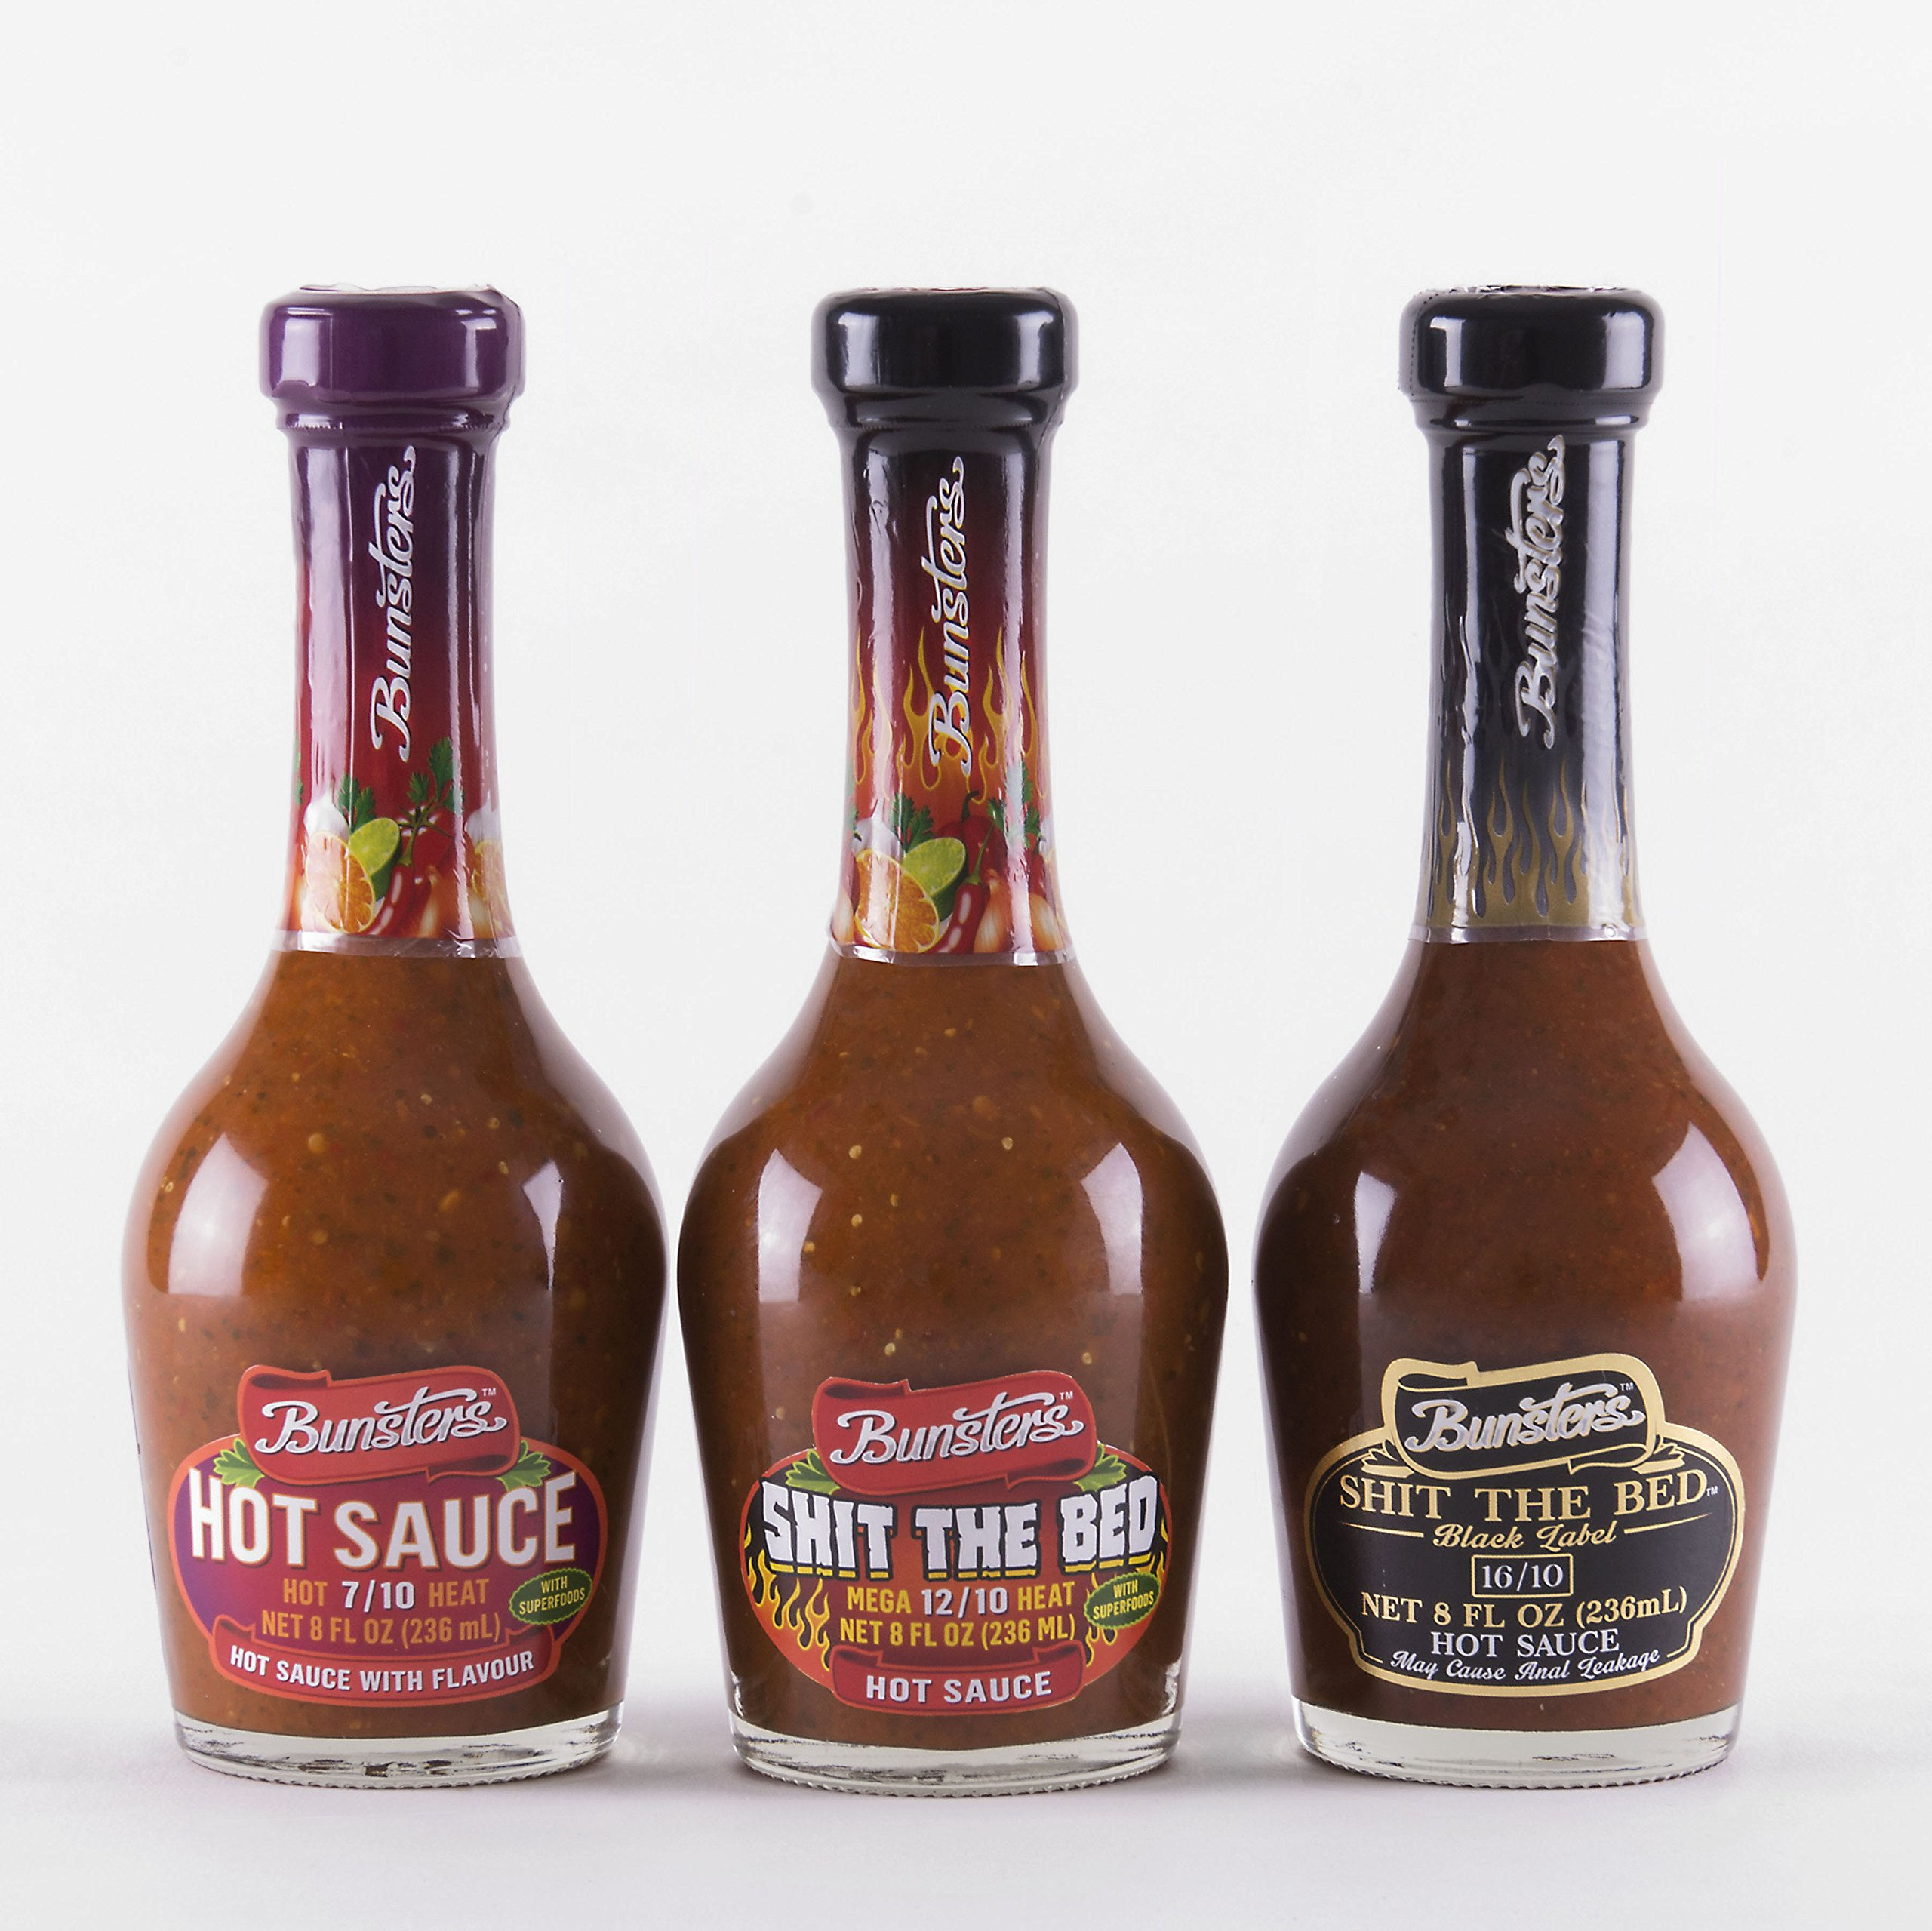 Bunsters Hot Chili Pepper Sauce - 3 Pack Set - Including Shit the Bed Hot Sauce, 8 fl oz by Bunsters (Image #4)